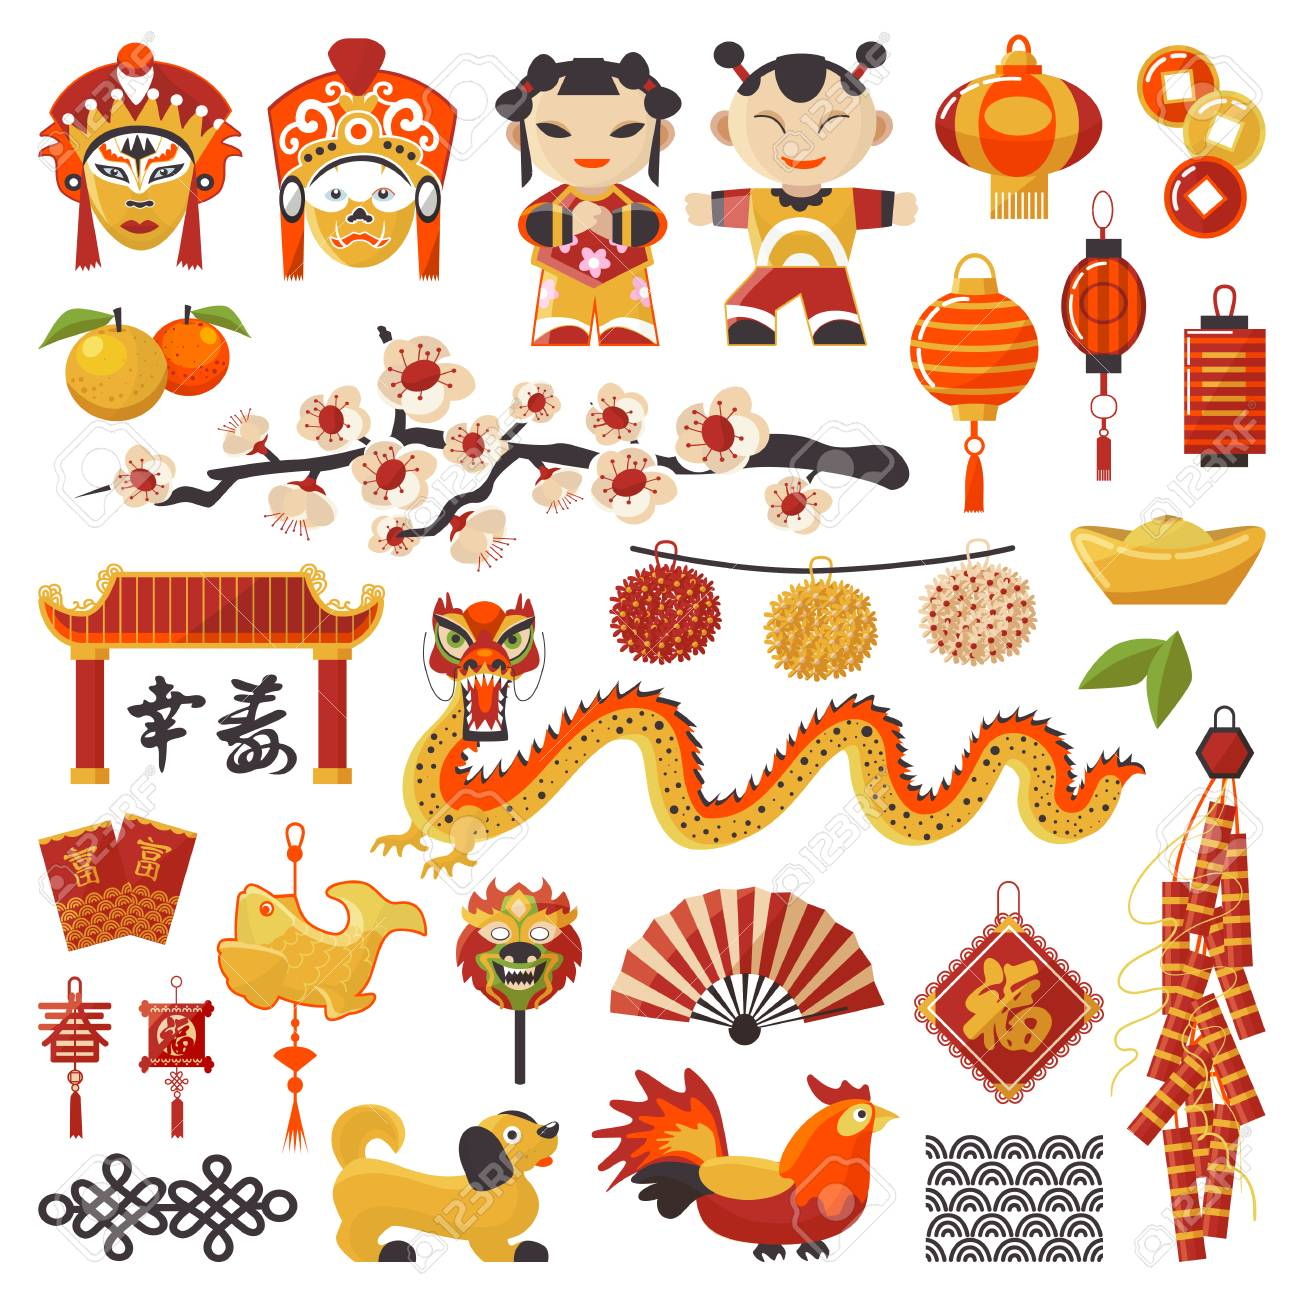 China New Year vector icons set decorative holiday. Chinese traditional symbols and objects dragon, dog, lighter and east tea, famous oriental culture chinese New Year celebration illustration. - 96000730